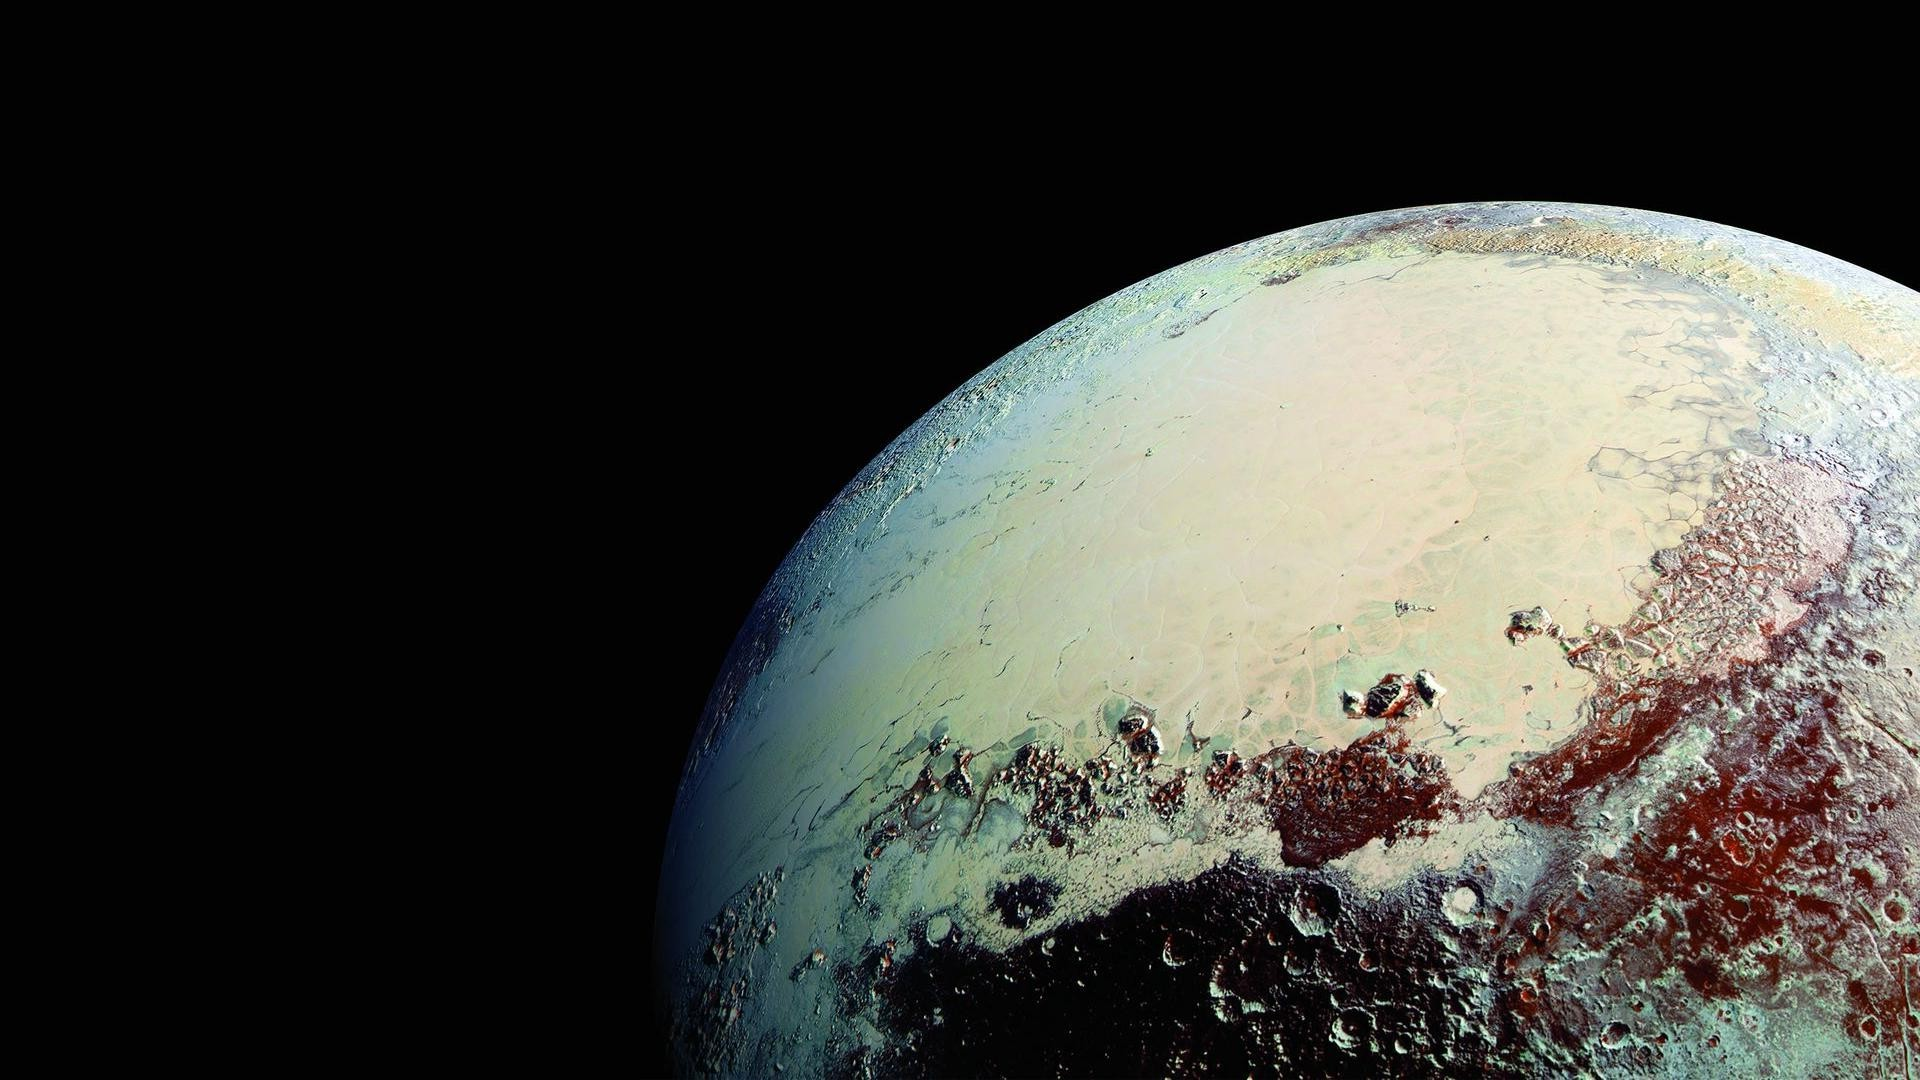 Earth-Pluto-Album-on-Imgur-1920%C3%971080-Pluto-Image-Adorable-wallpaper-wp3405150